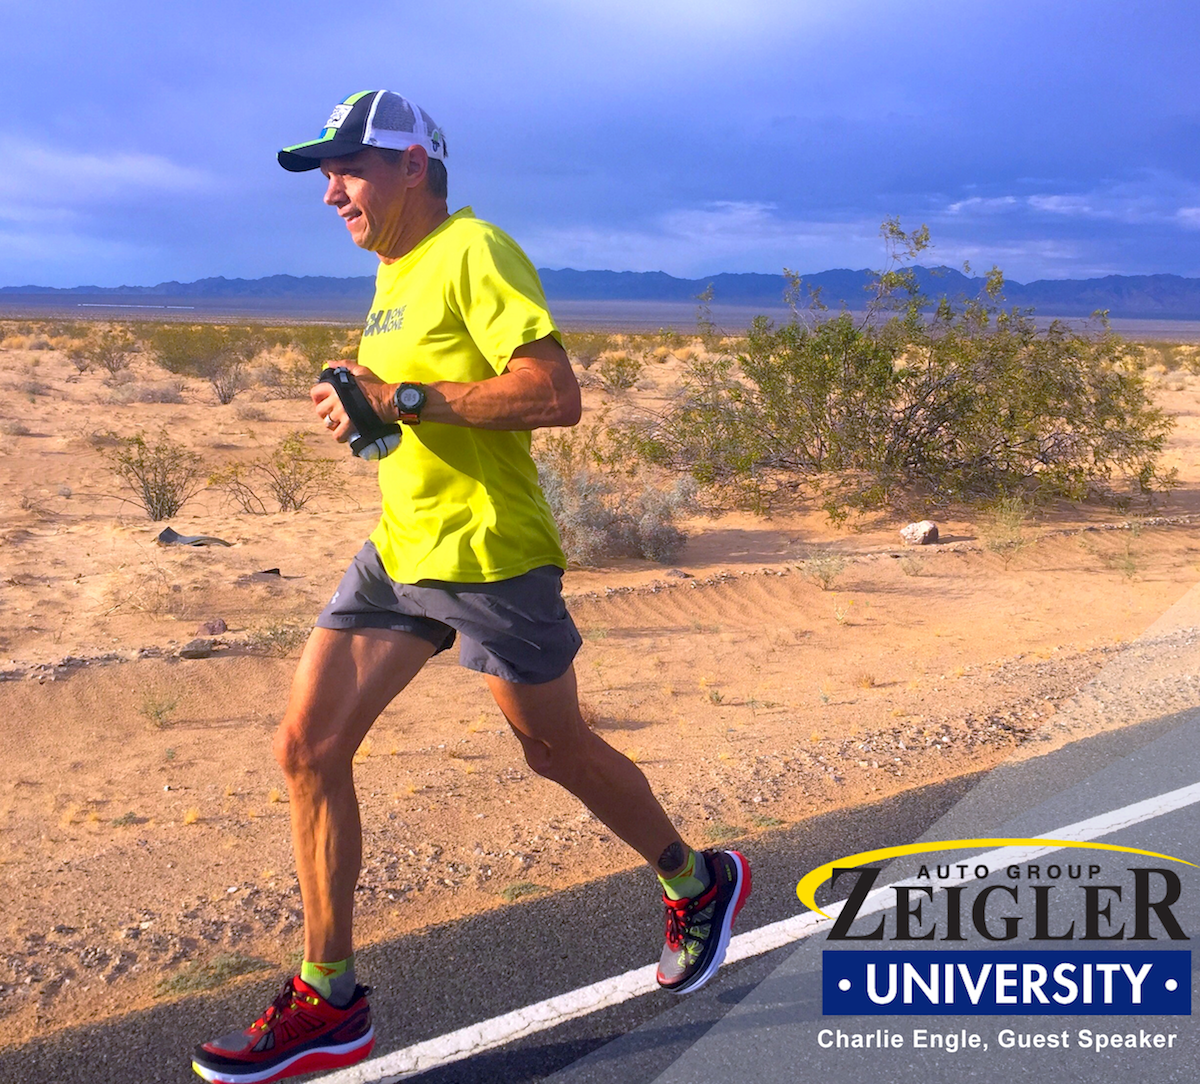 Latest Installment of Zeigler University Guest Speaker Series to Include Global Ultra-Endurance Athlete, Charlie Engle